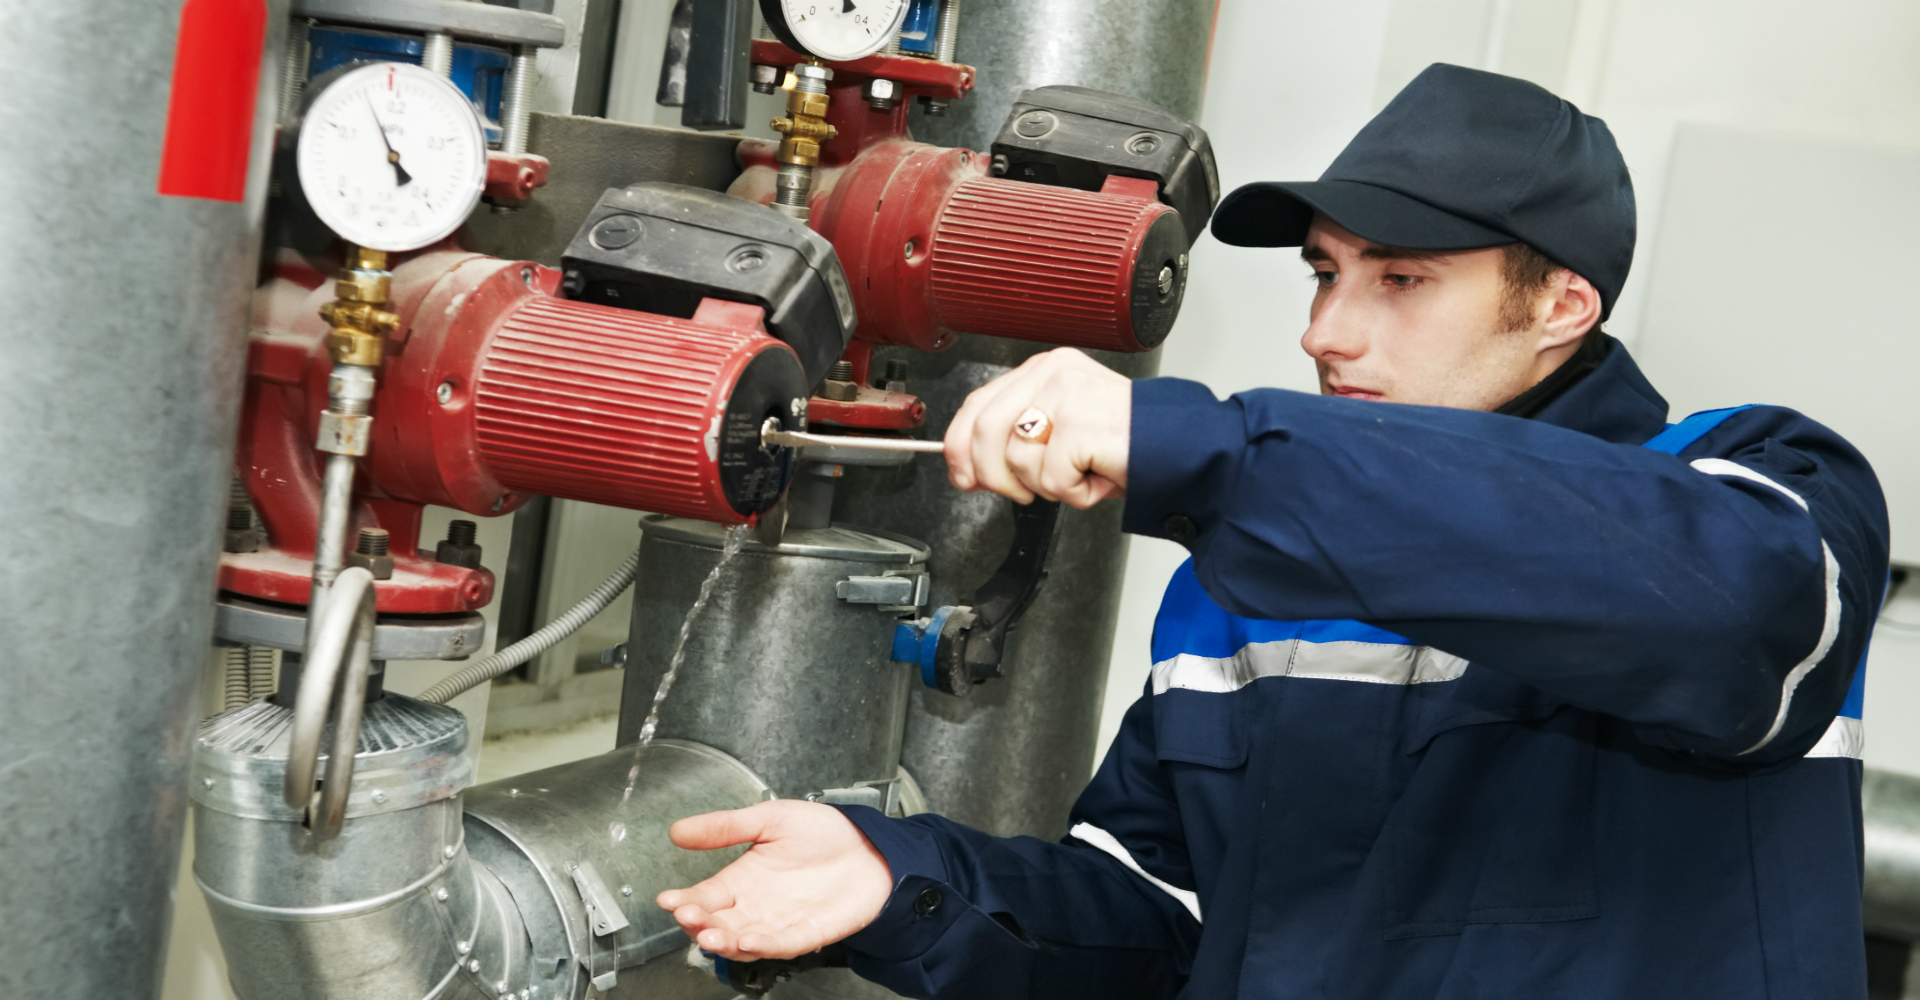 What Qualifications Should I Look For in an HVAC Repair Company